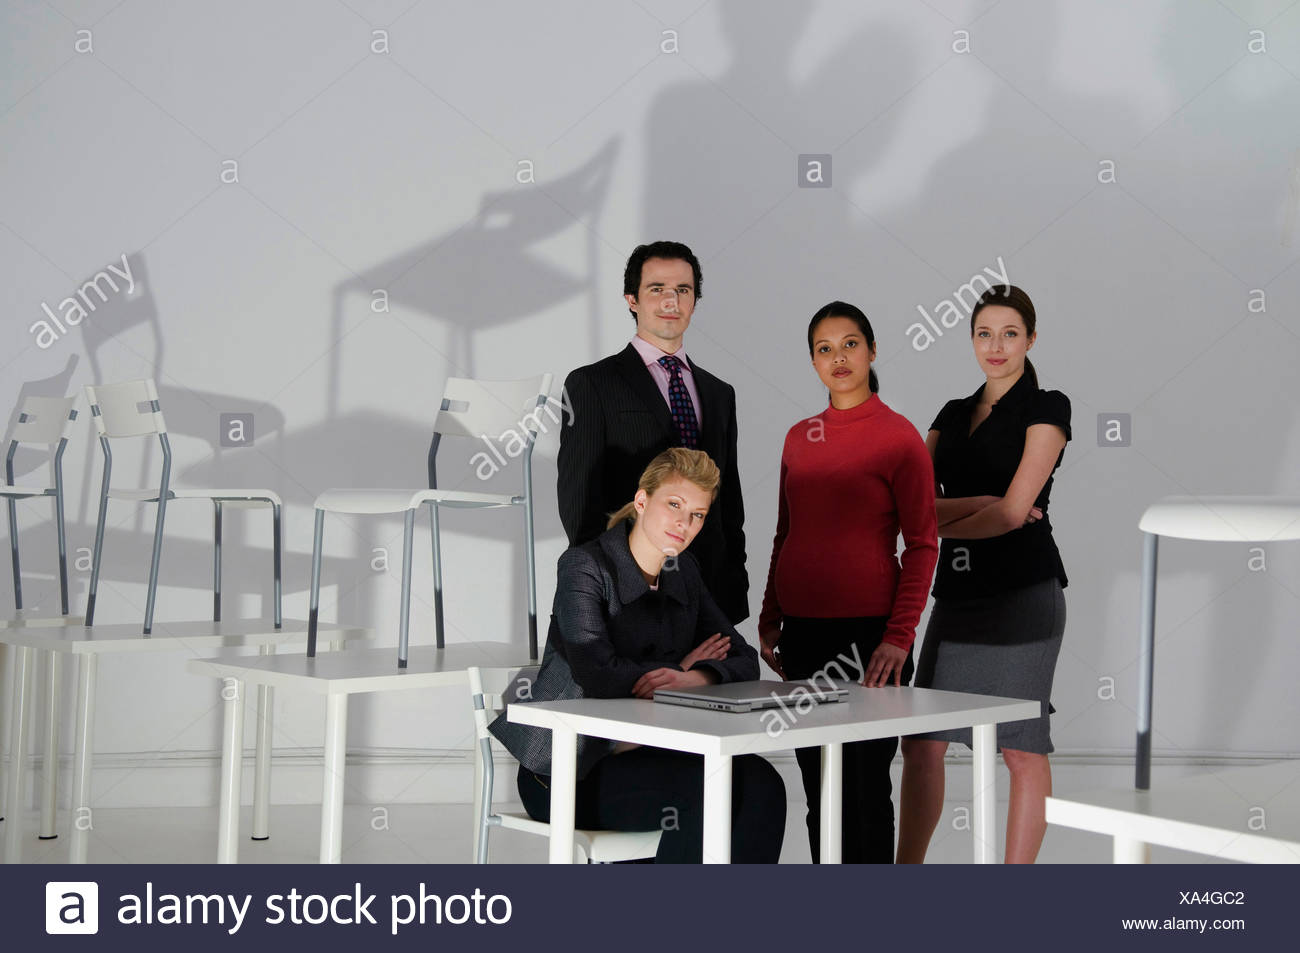 Late night at the office - Stock Image